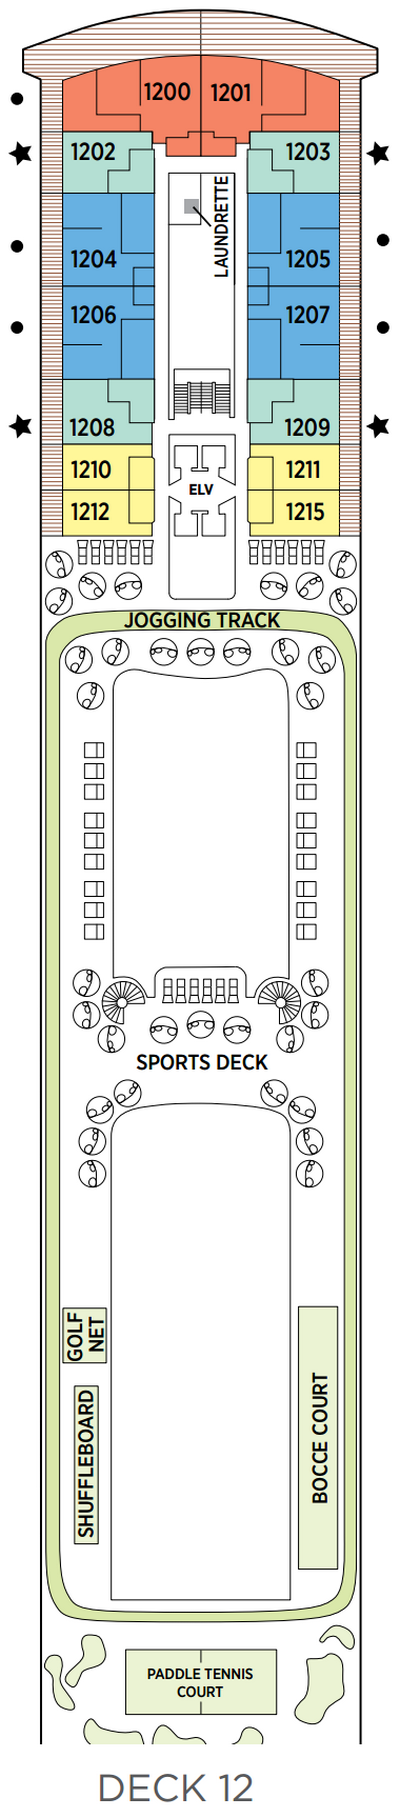 Seven Seas Splendor Deck 12 layout